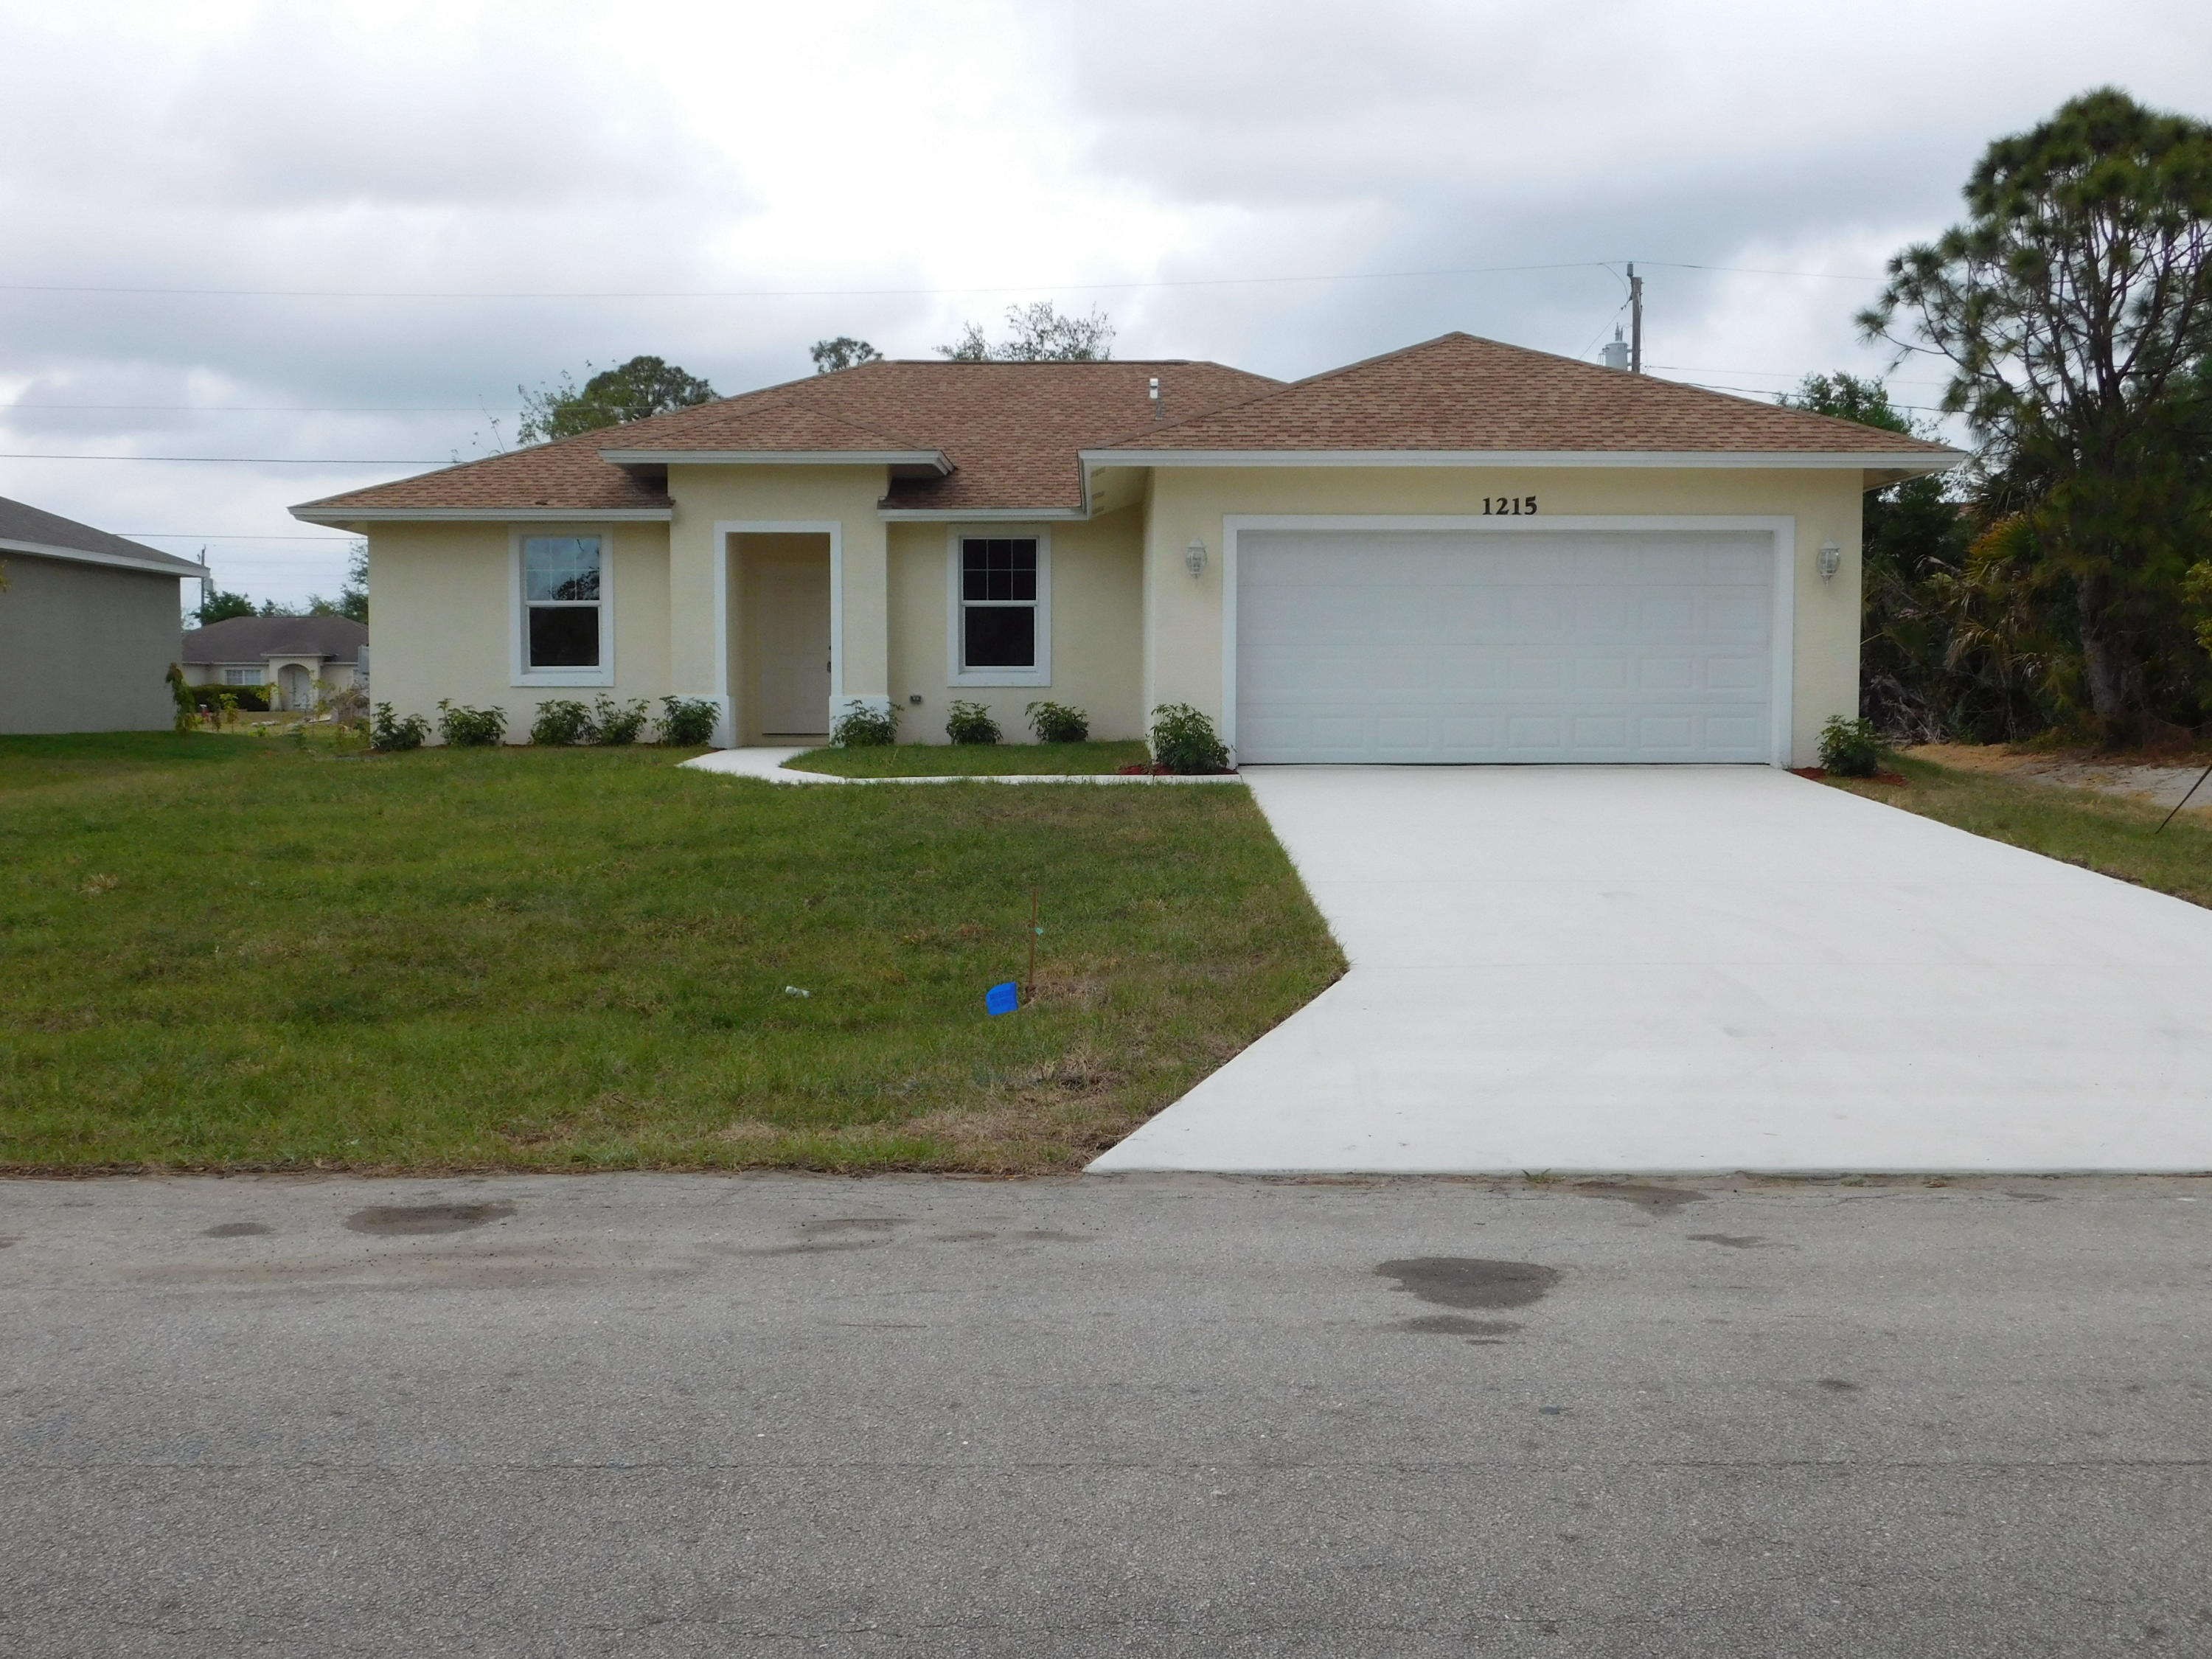 1215 Ermine Avenue, Port Saint Lucie, Florida 34953, 4 Bedrooms Bedrooms, ,2 BathroomsBathrooms,Single Family,For Sale,Ermine,RX-10421843